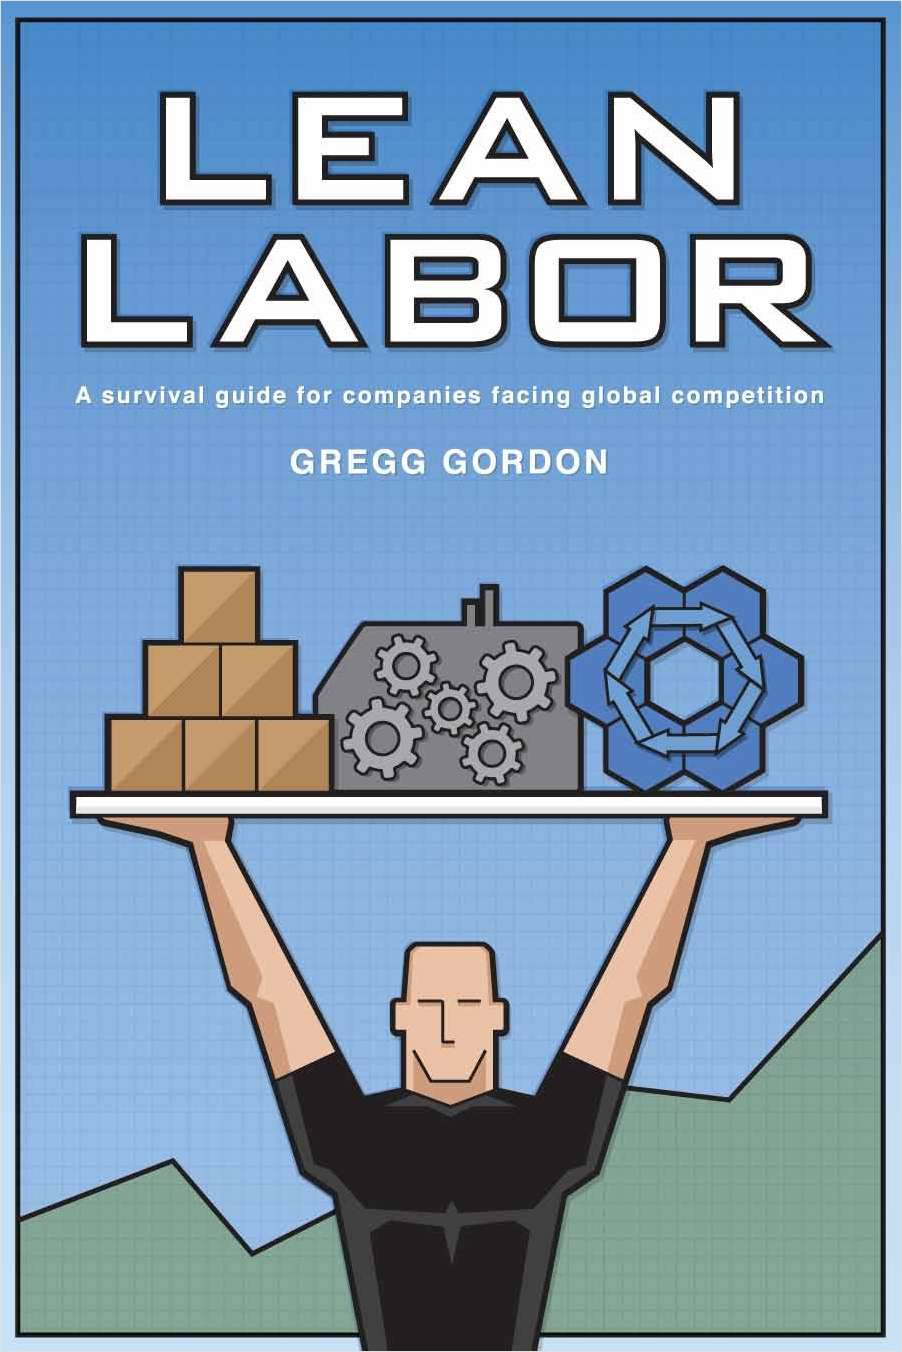 Lean Labor: A Survival Guide for Companies Facing Global Competition